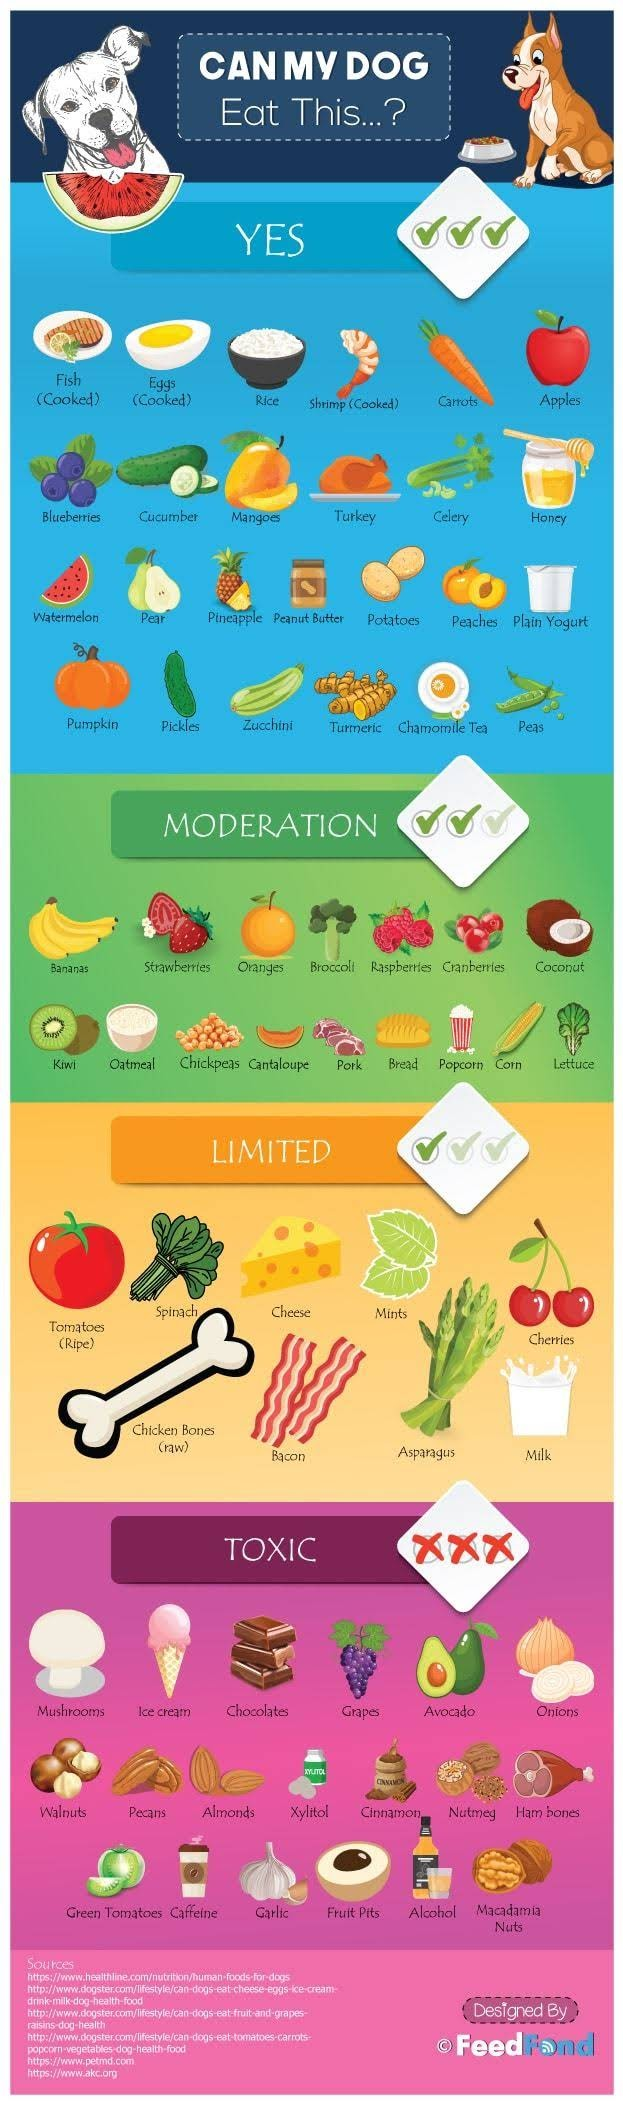 Can My Dog Eat This #infographic